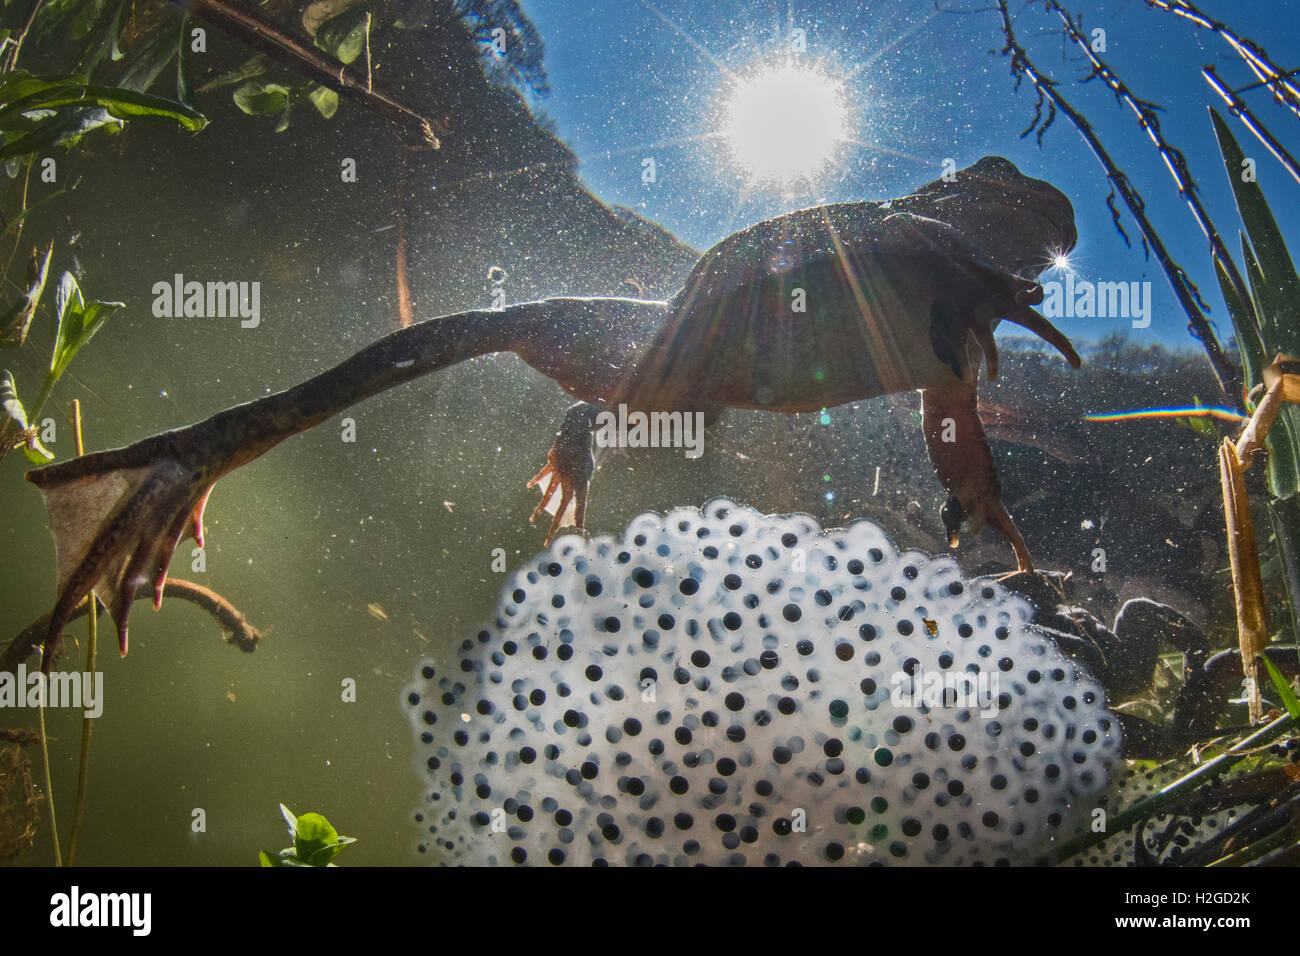 Common Frog, Rana temporaria and frog spawn in pond in spring North Norfolk - Stock Image